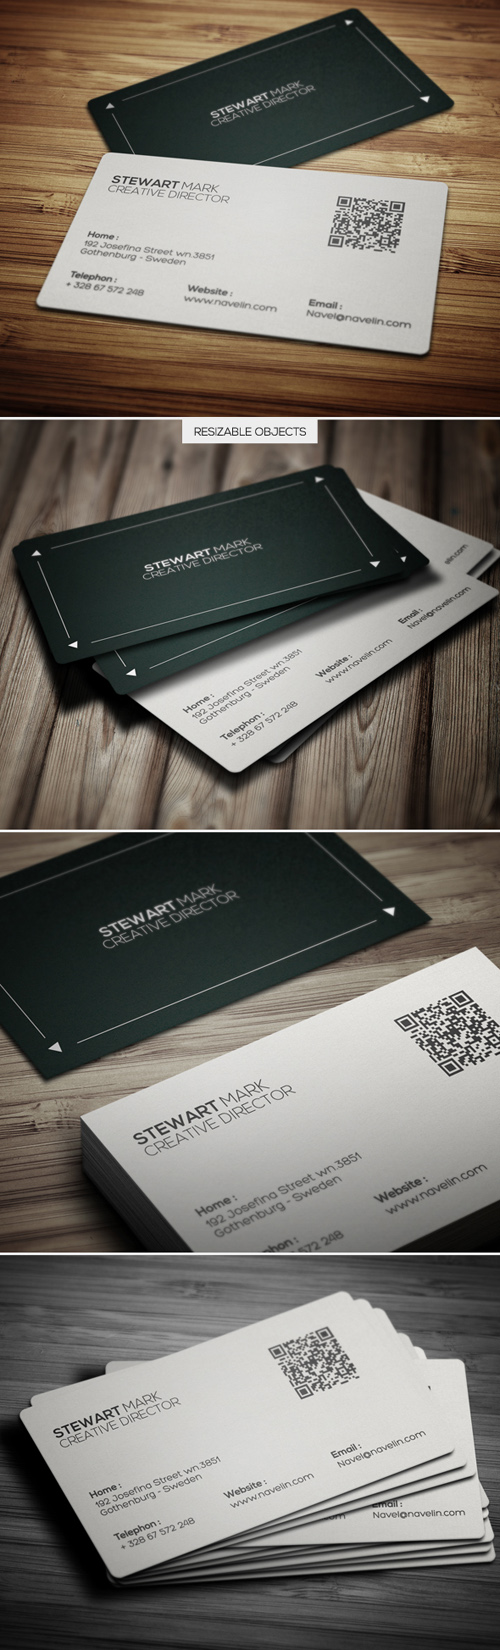 Creative Business Cards Design-2